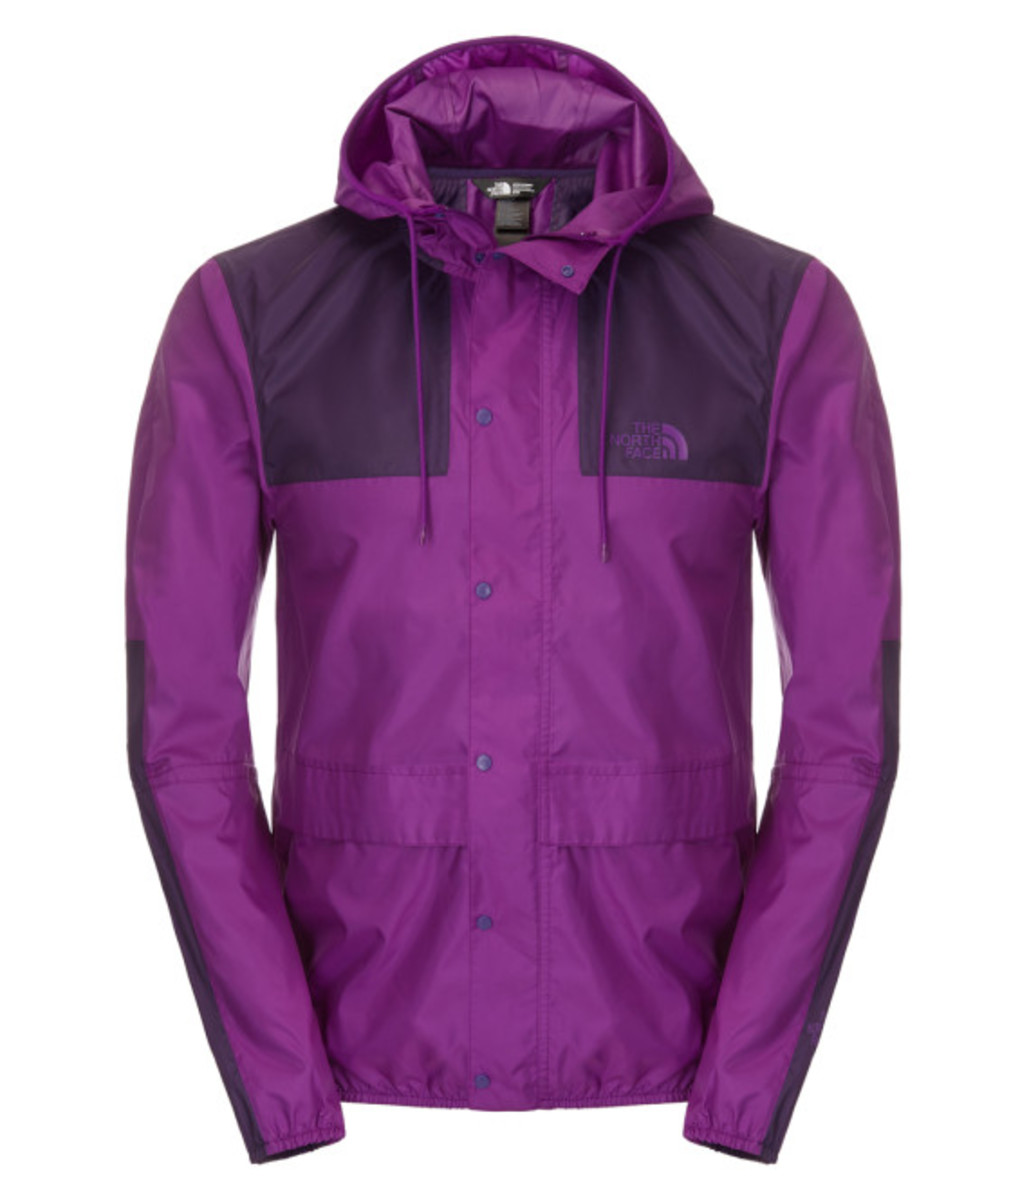 the-north-face-mountain-jacket-08